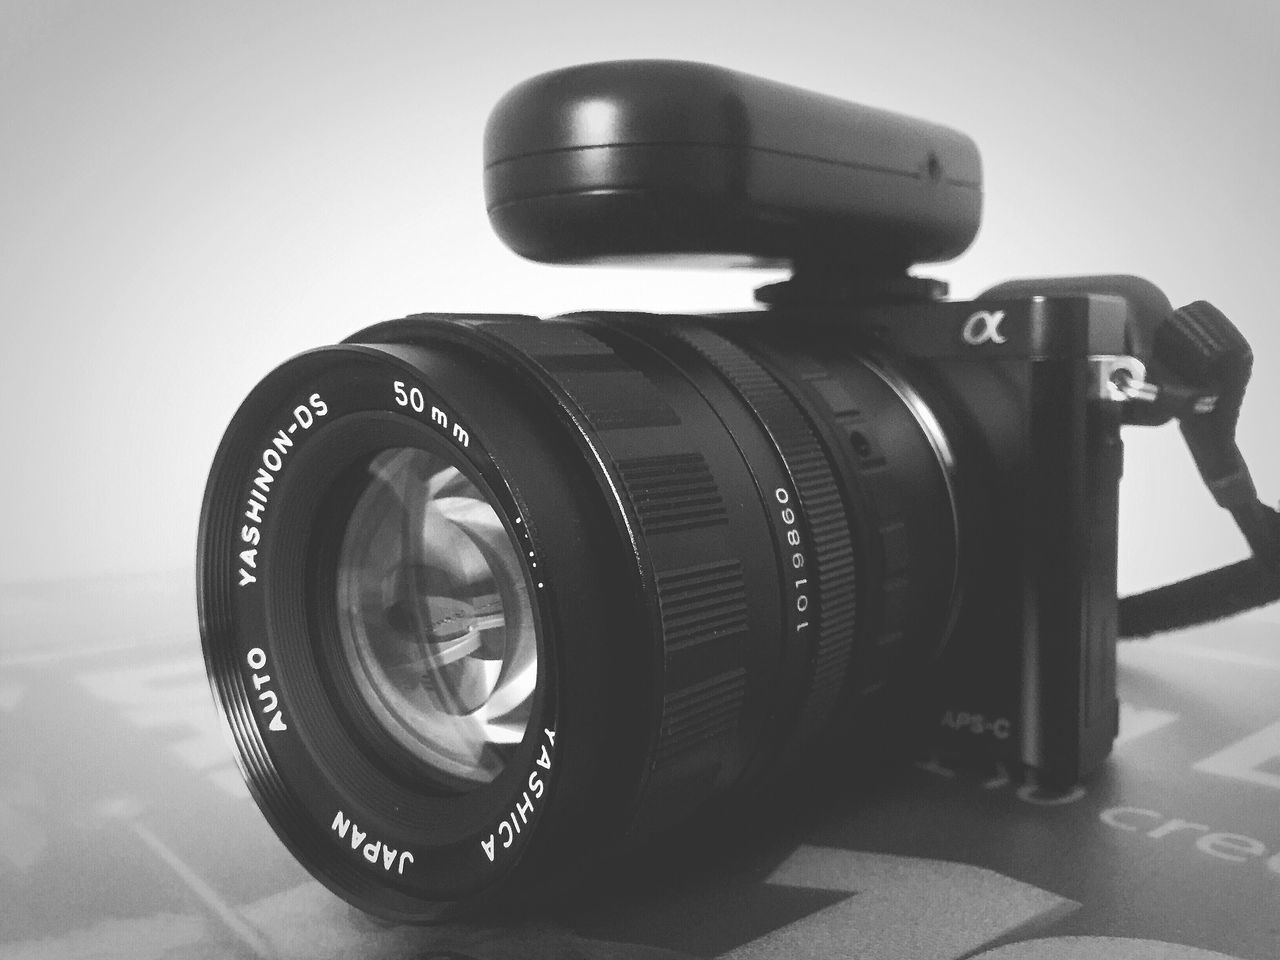 lens - optical instrument, camera - photographic equipment, photography themes, no people, digital camera, technology, camera, slr camera, close-up, digital single-lens reflex camera, photographing, day, film industry, modern, indoors